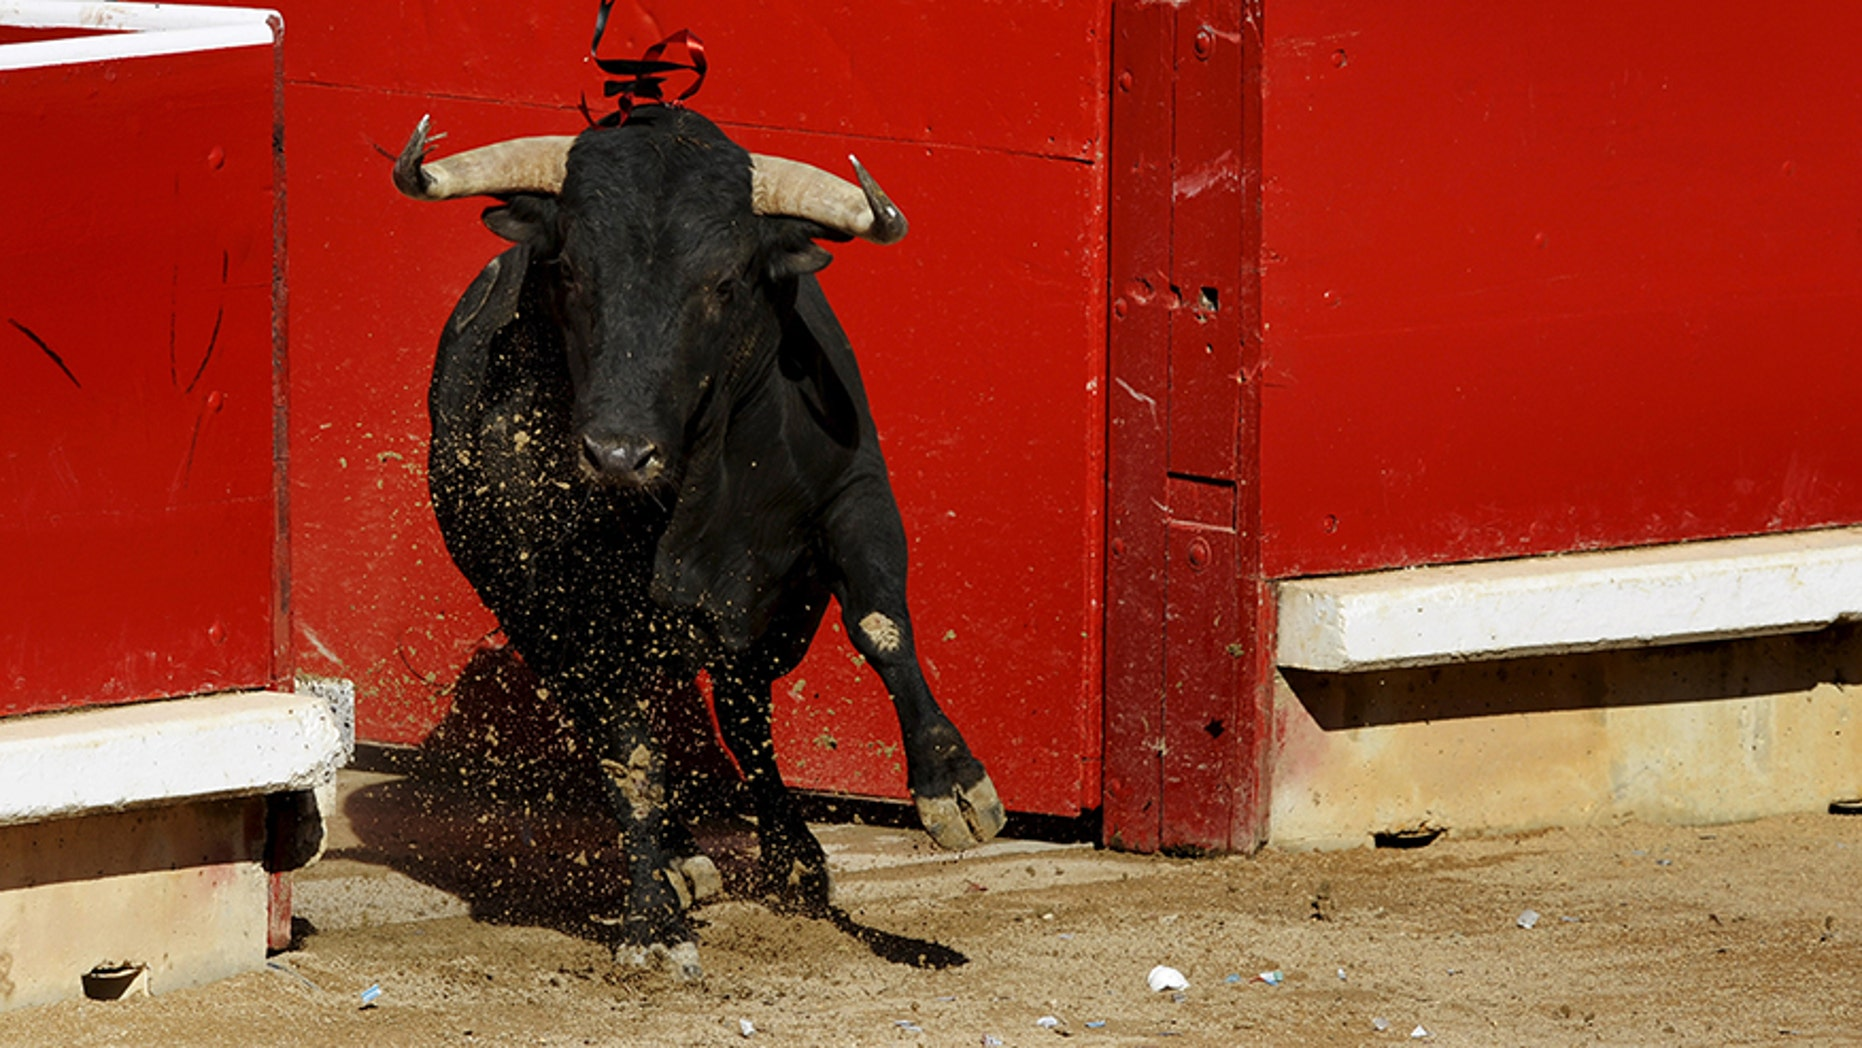 A bull charges into the ring during a bullfight at the San Fermin festival in Pamplona in 2015. This weekend in Mexico, a bullfighter was gored in a scrotum after being caught off guard in the ring.